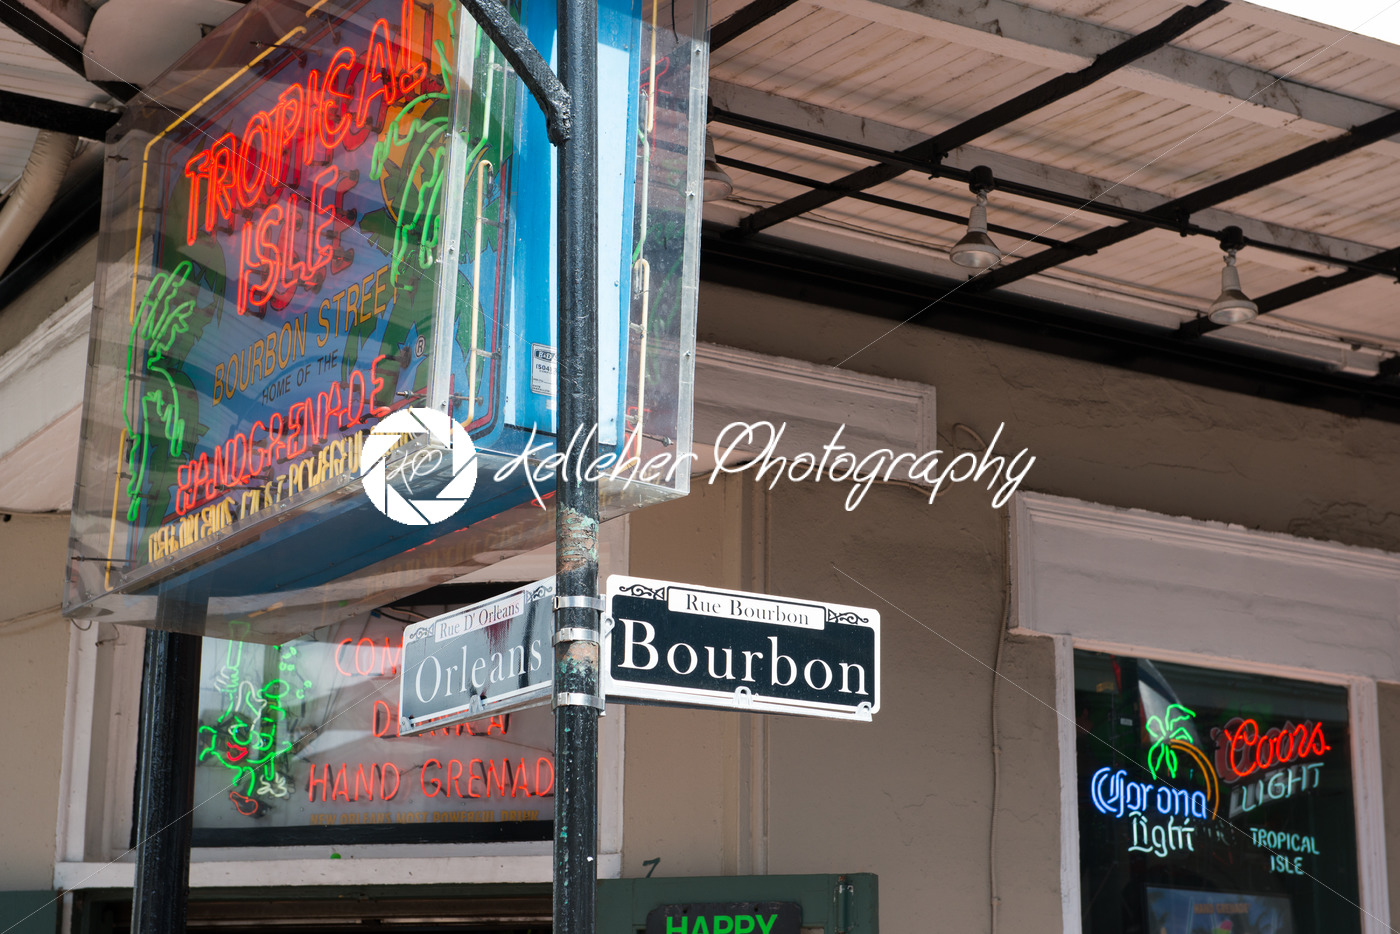 NEW ORLEANS, LA – APRIL 13: Bourbon and Orleans Street sign in the French Quarter of New Orleans, Louisiana on April 13, 2014 - Kelleher Photography Store